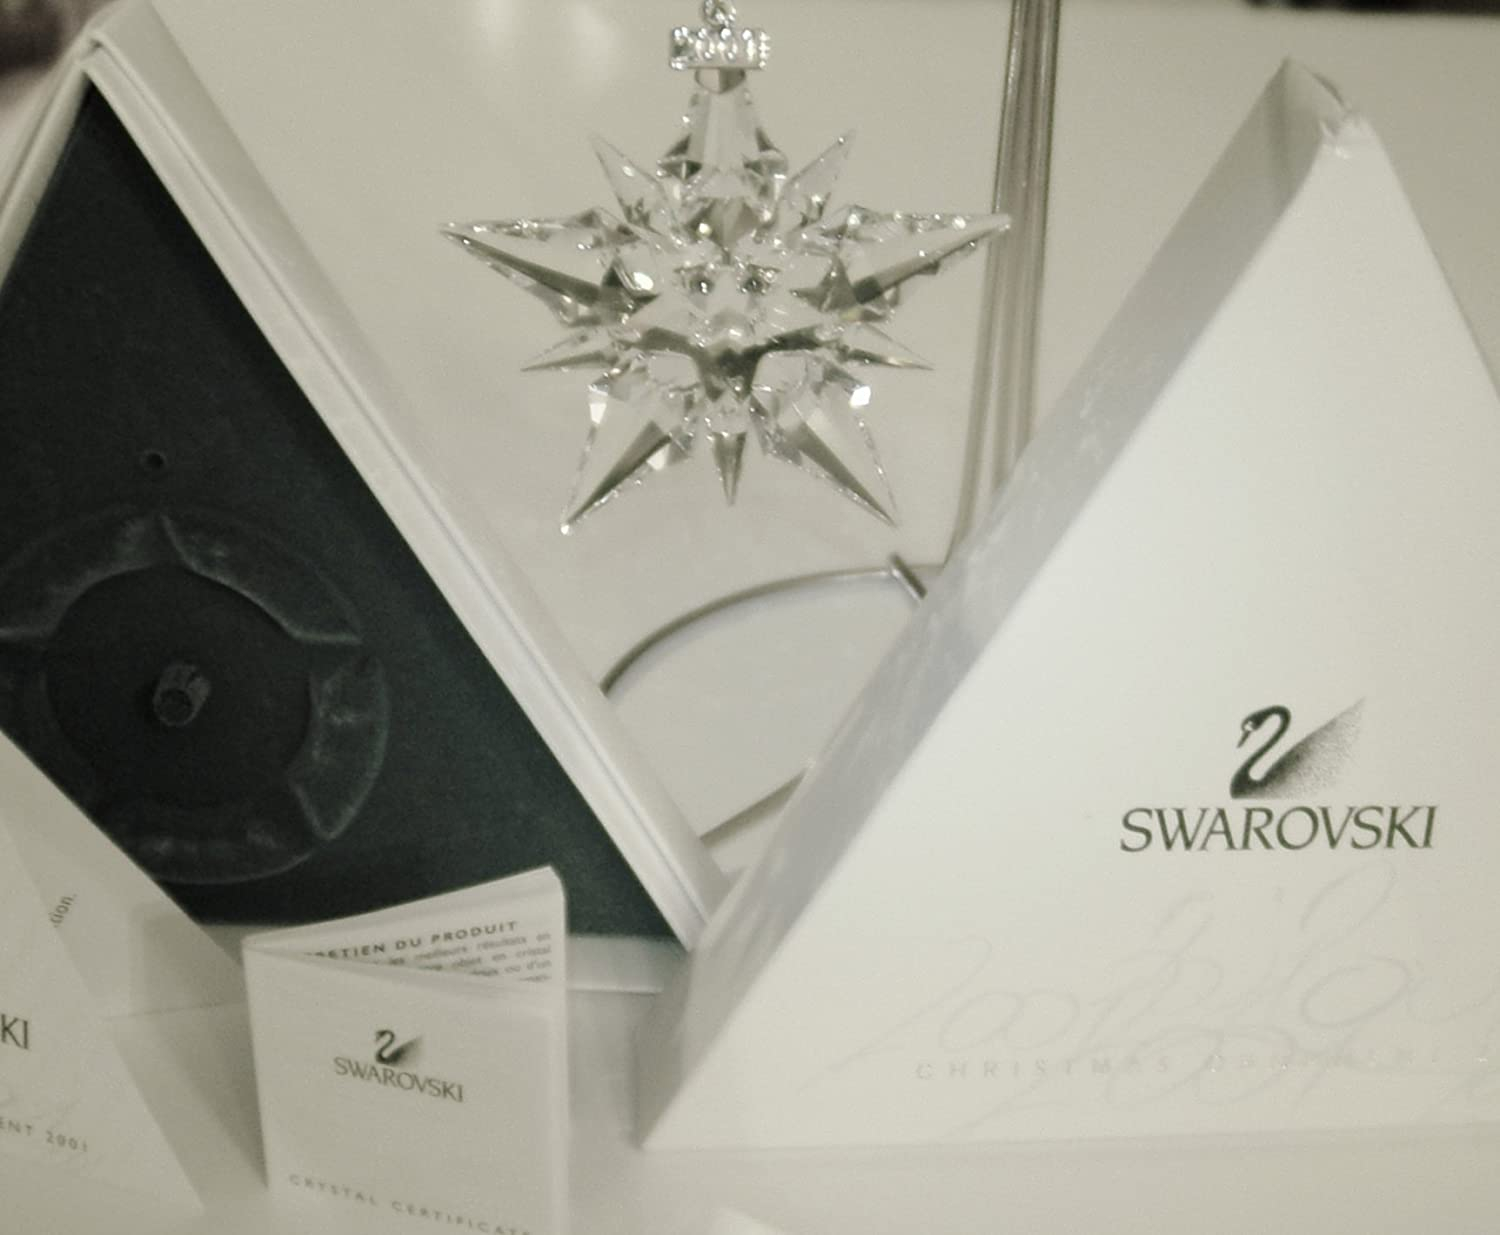 Swarovski christmas ornament 2004 - Swarovski Christmas Ornament 2004 58